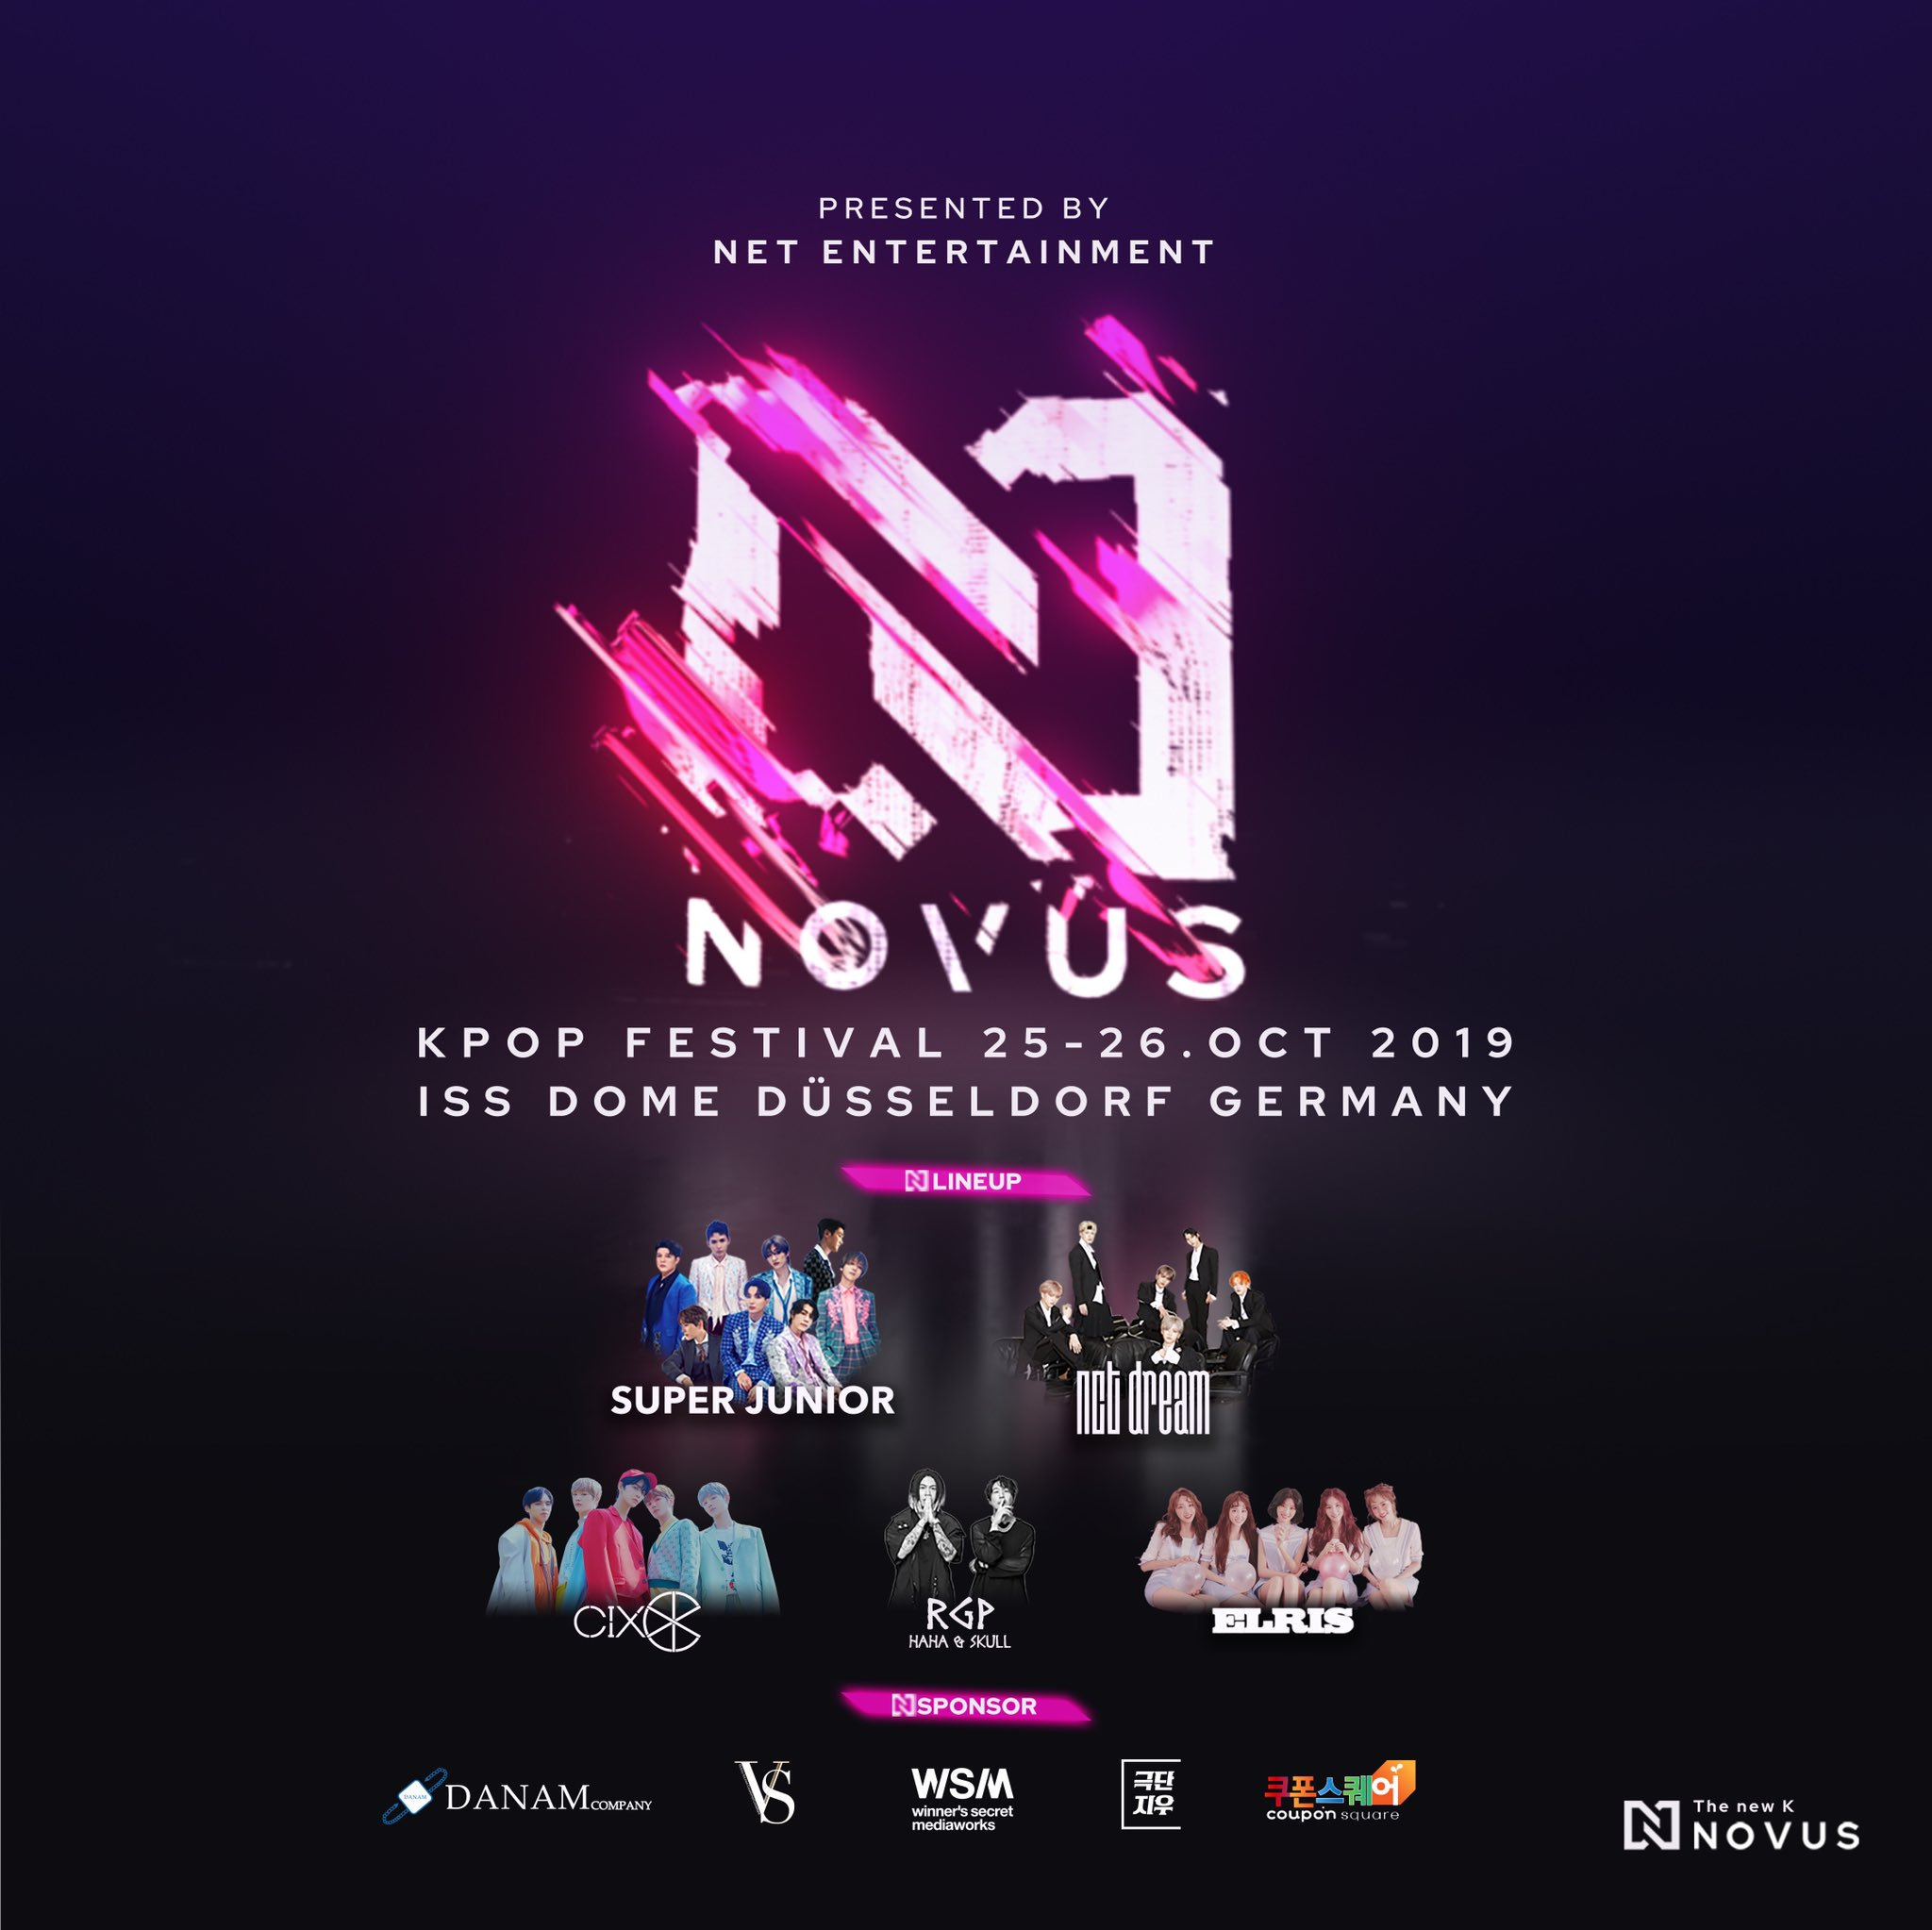 novus kpop, kpop lineup, germany, kpop concert, cix, nct dream, super junior, elris, haha, skull